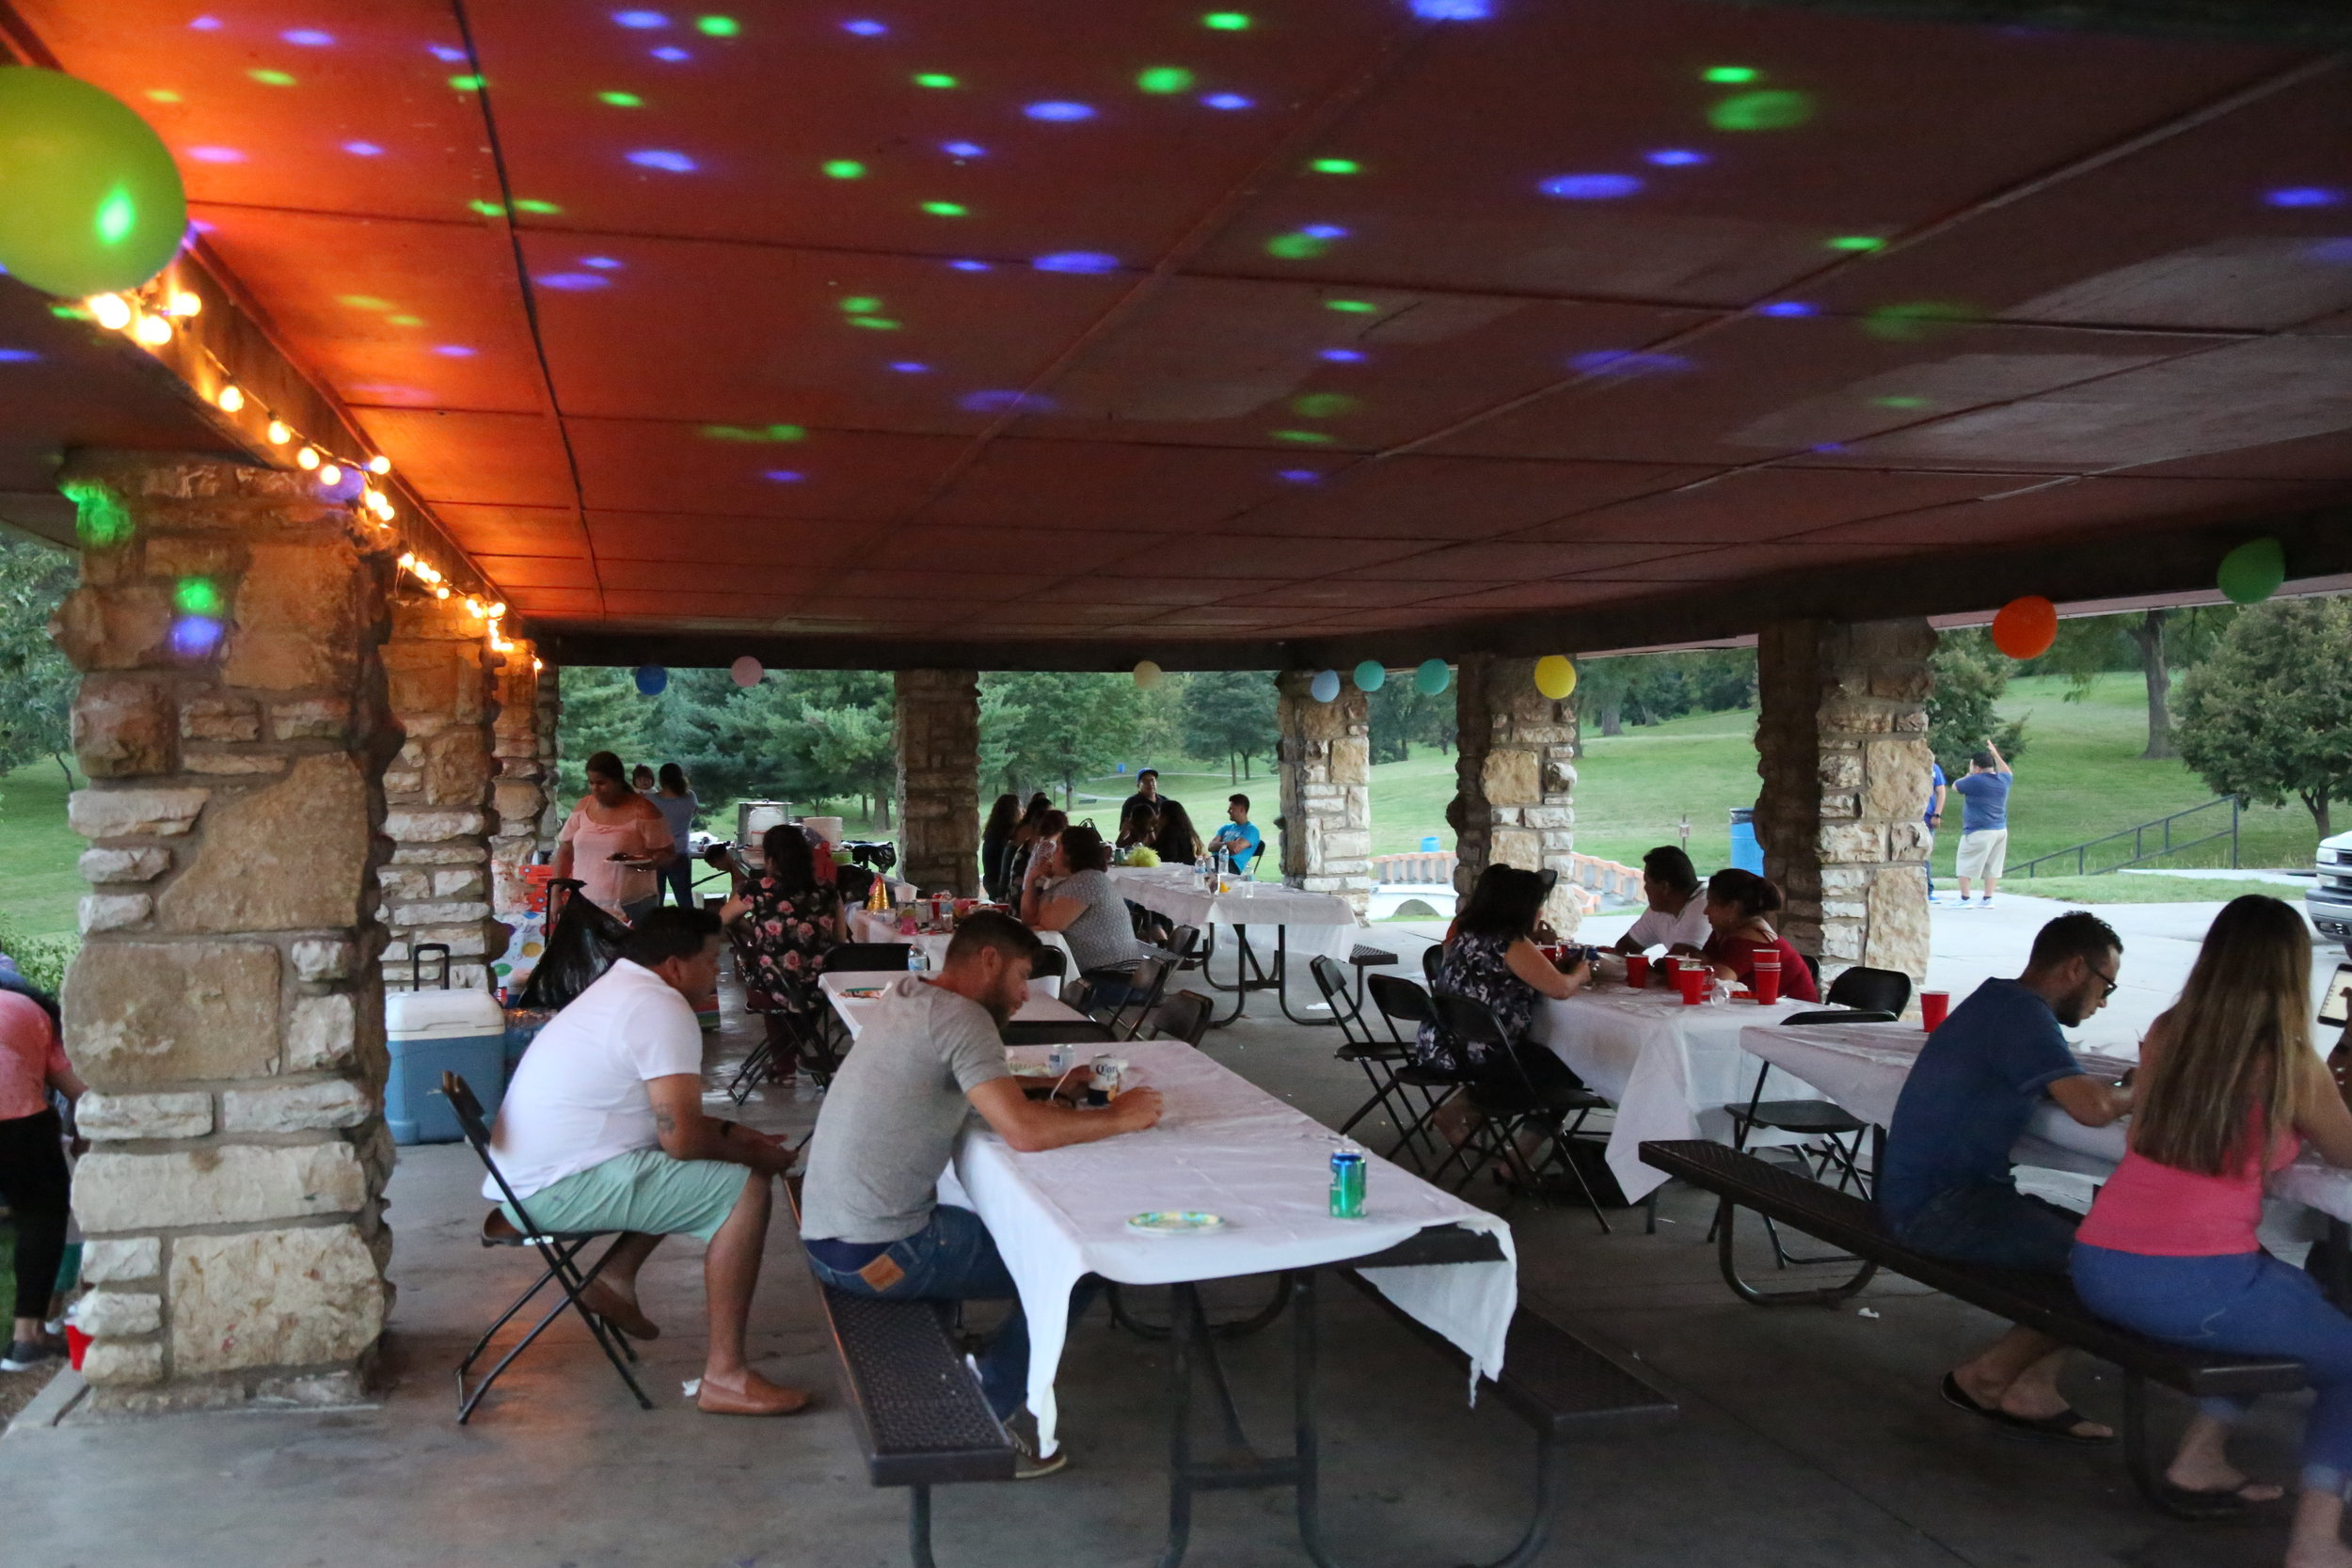 A Saturday night birthday party added tables, lighting, and festivities to the park.